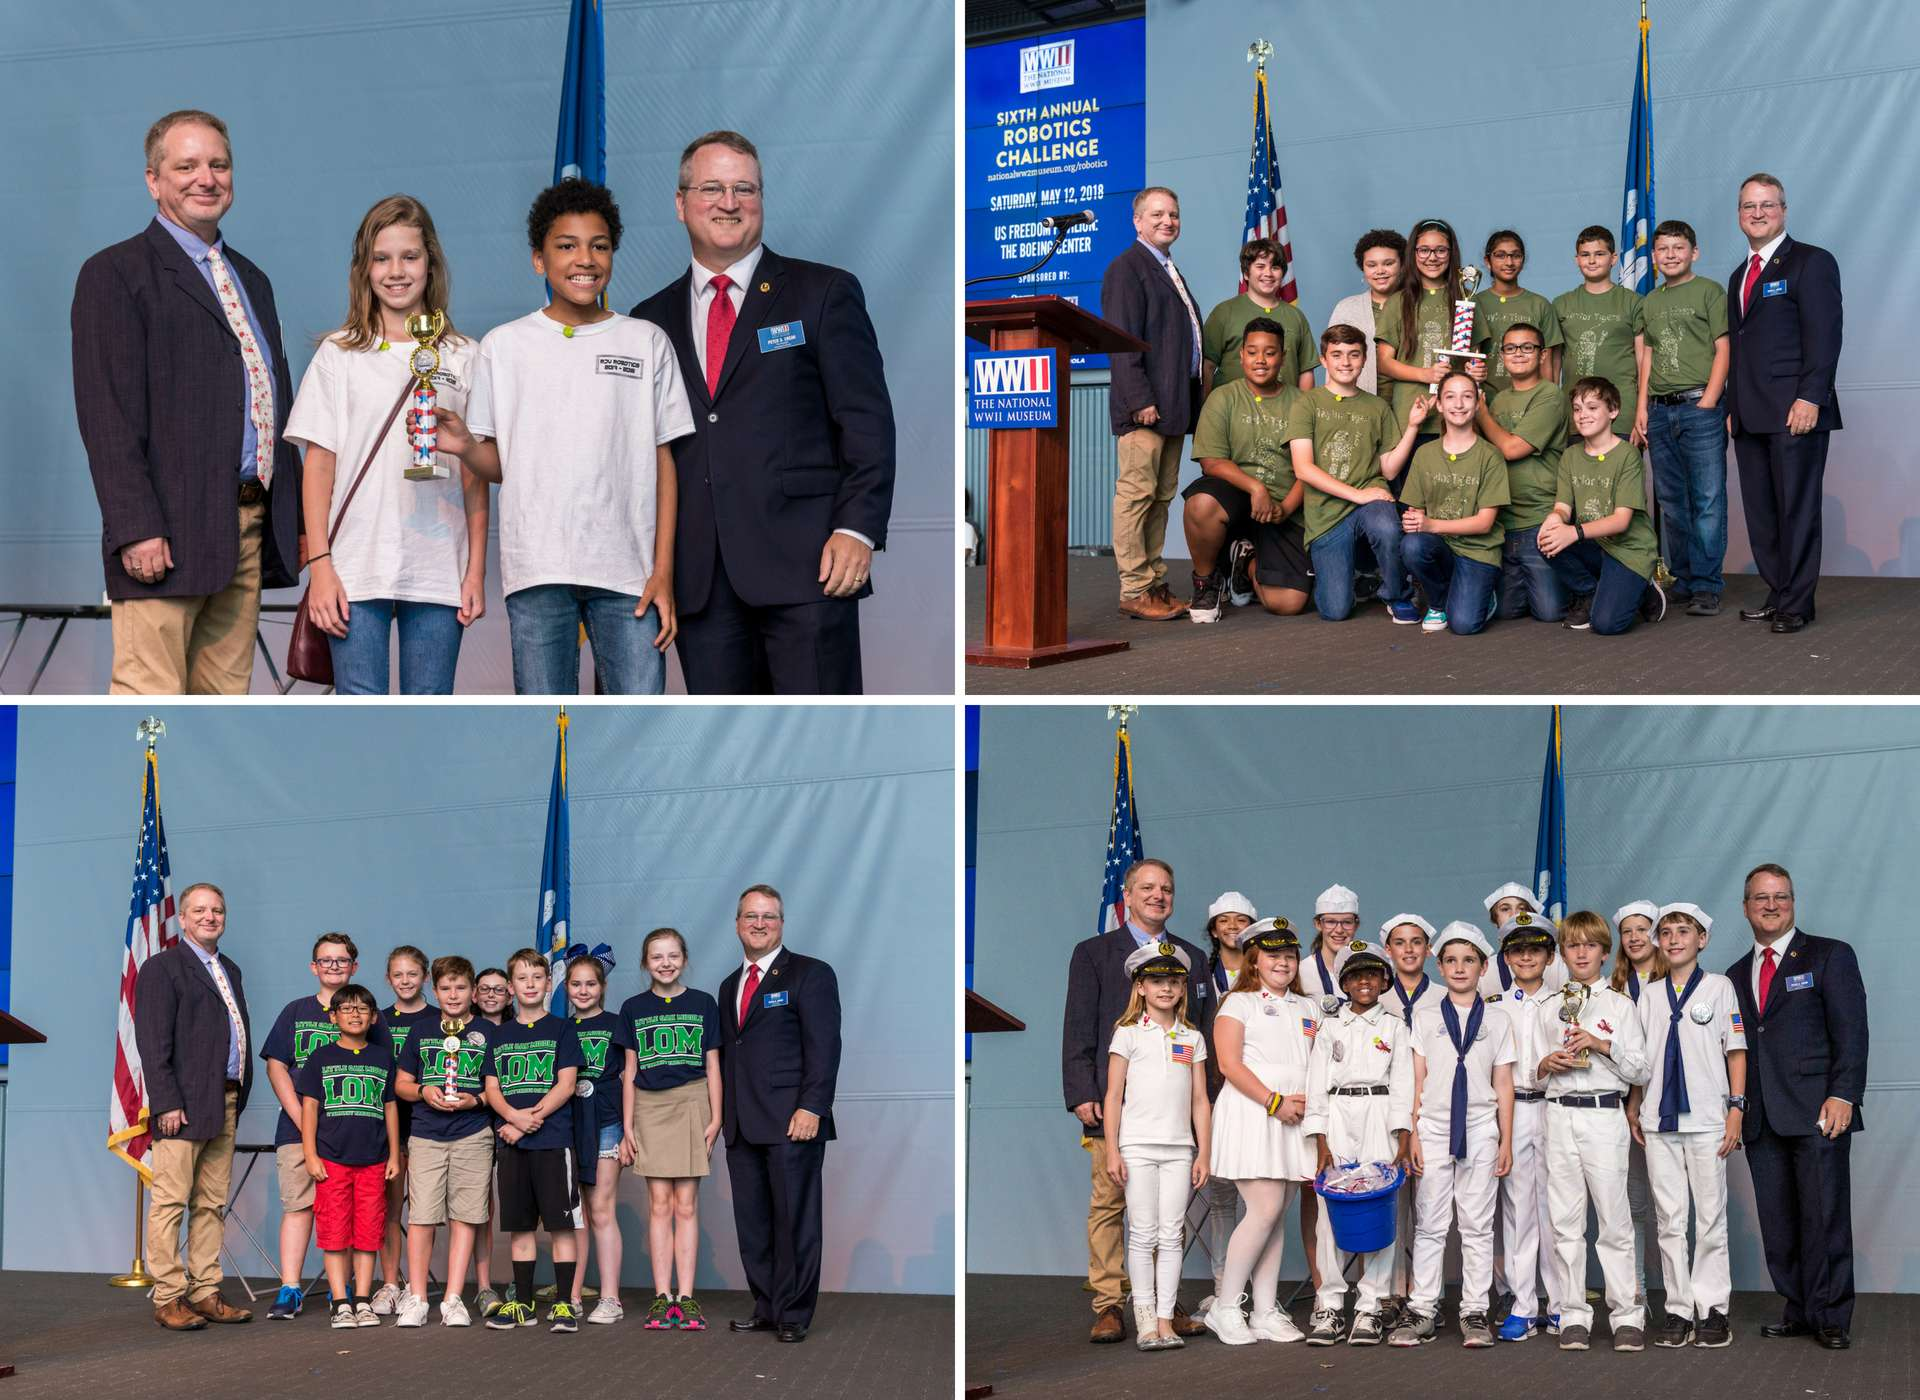 Robotics Challenge 2018 The National Wwii Museum New Orleans